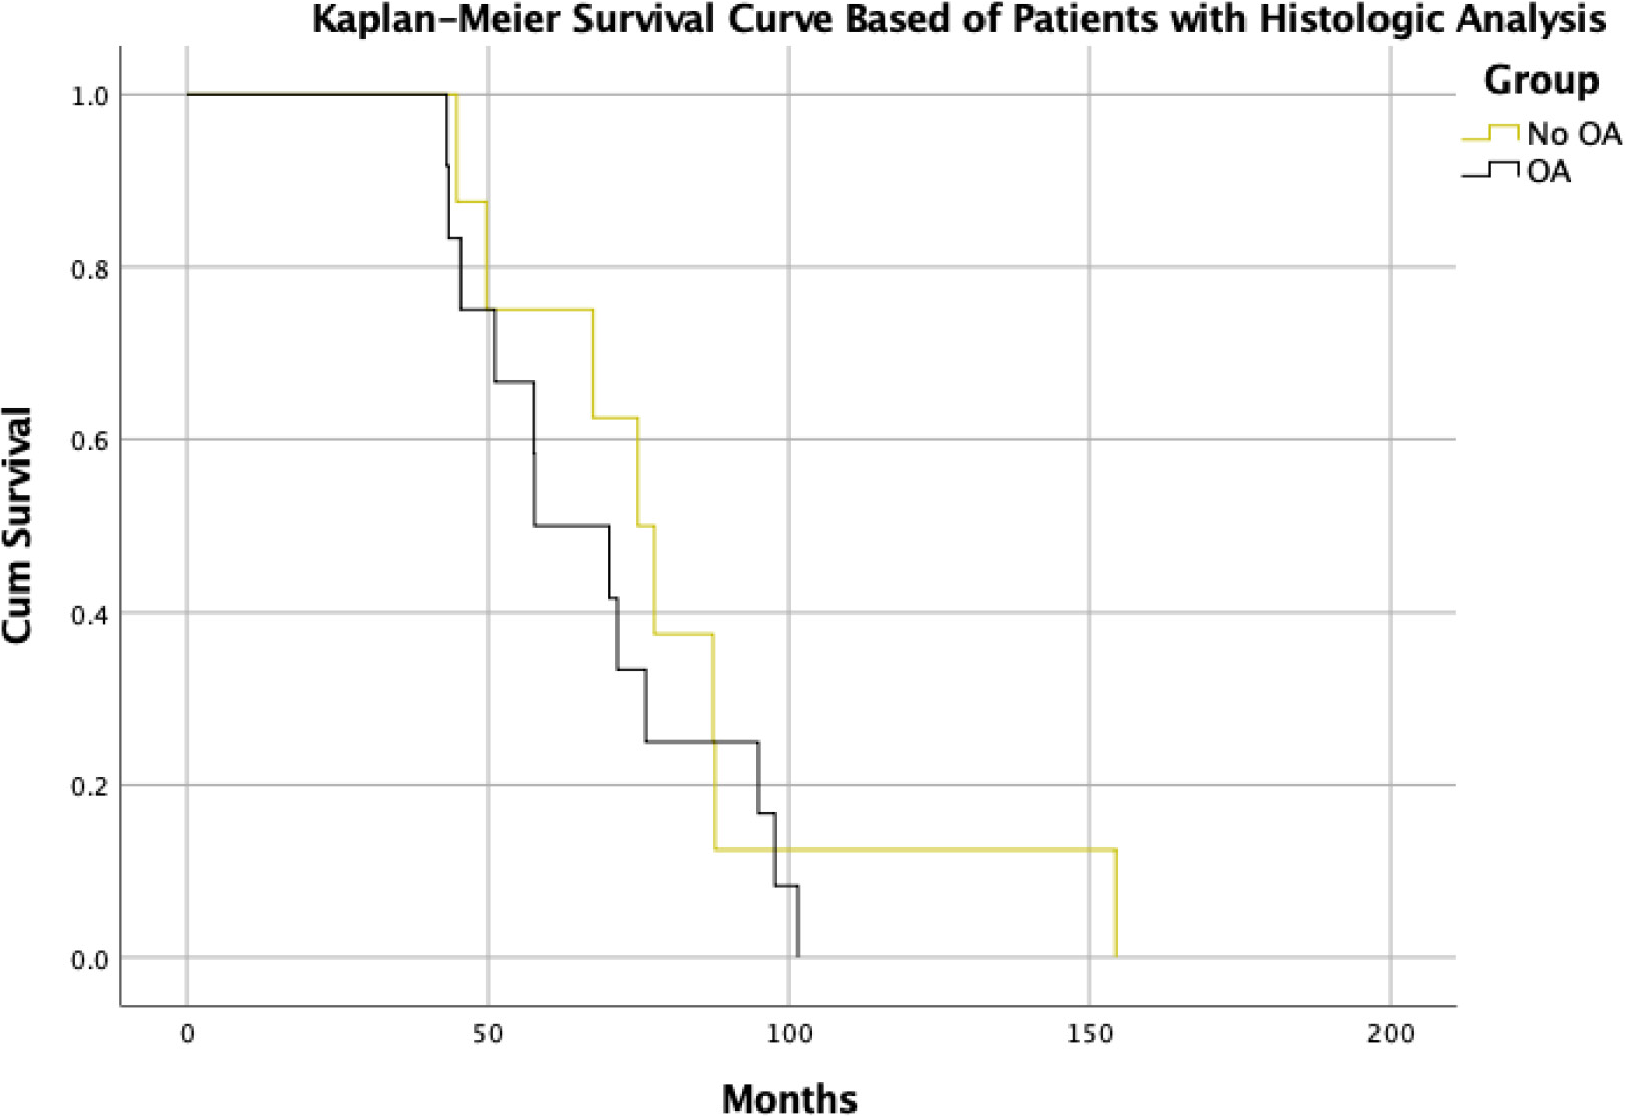 Kaplan-Meier Survival curve of patients with clinical and histological data.